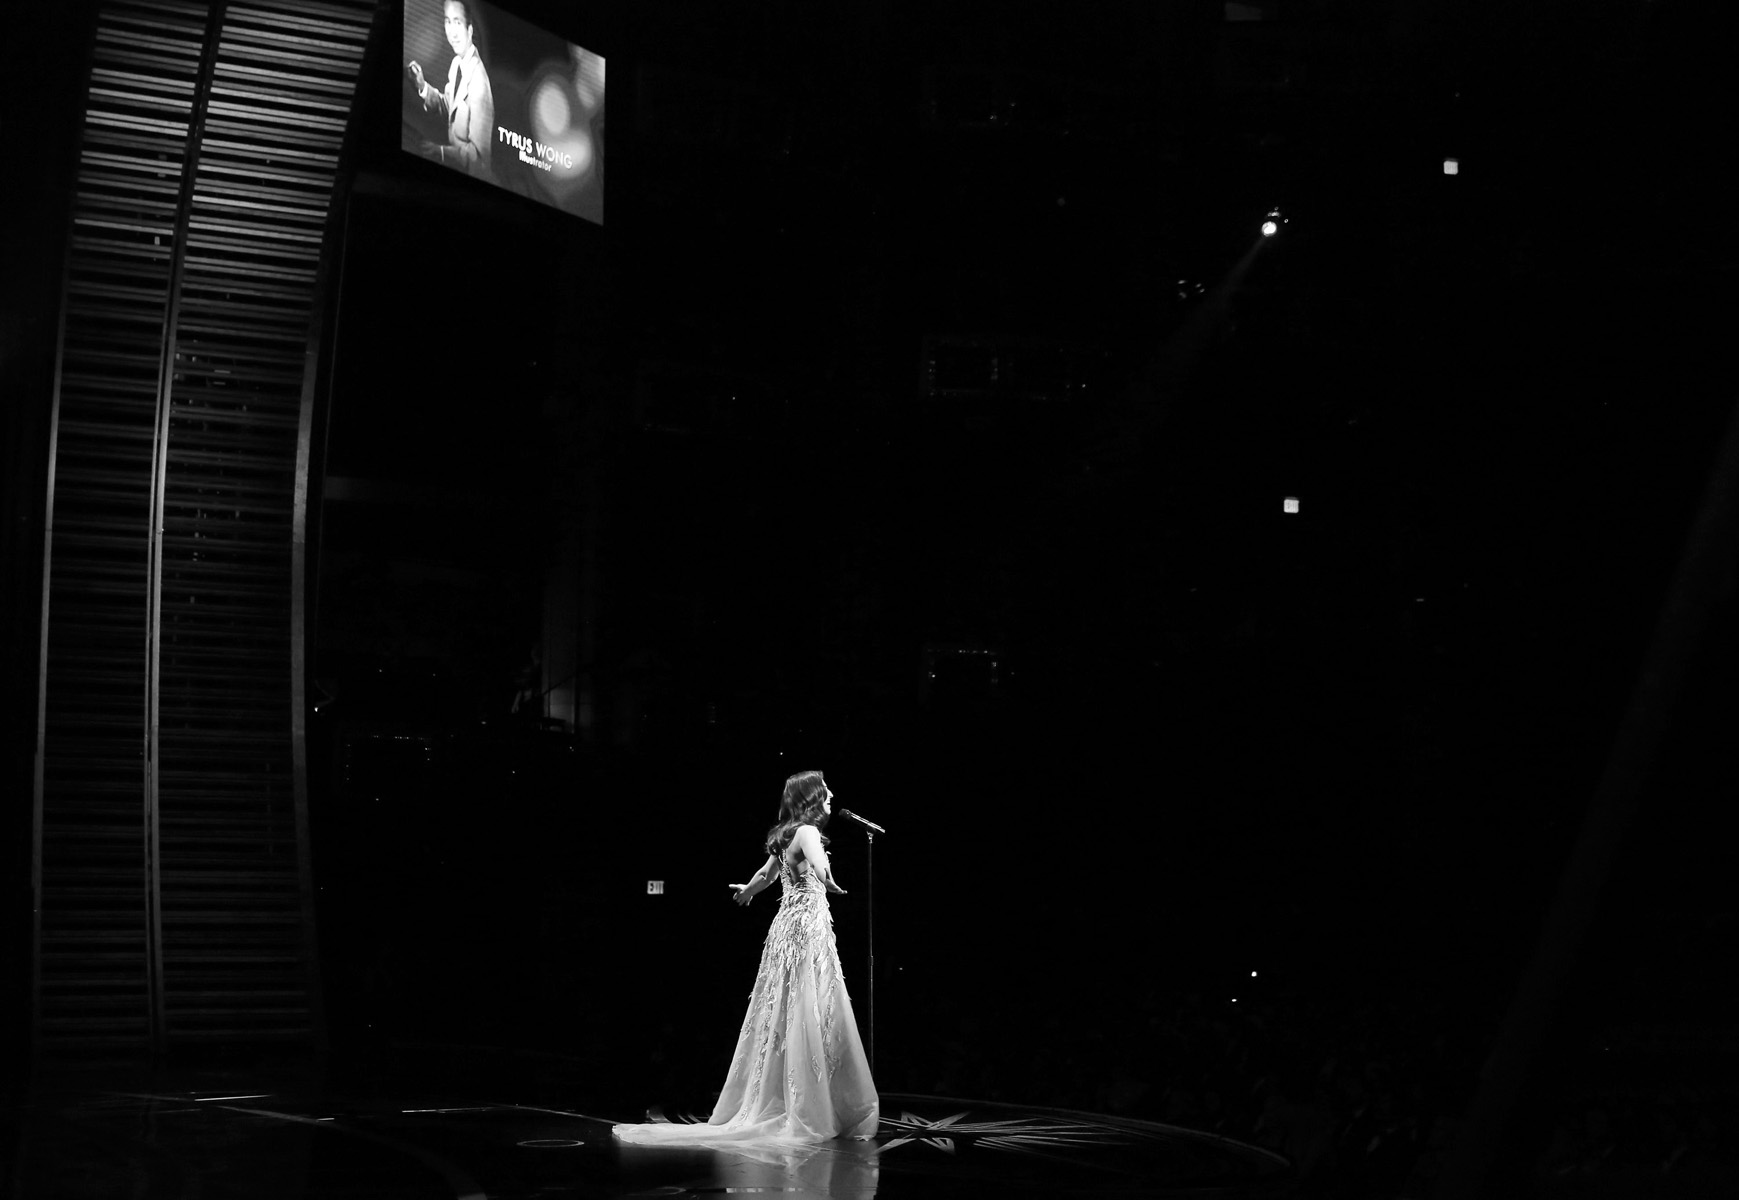 Sara Bareilles performs during the {quote}In Memoriam{quote} tribute at the Oscars on Sunday, Feb. 26, 2017, at the Dolby Theatre in Los Angeles. (Photo by Matt Sayles/Invision/AP)